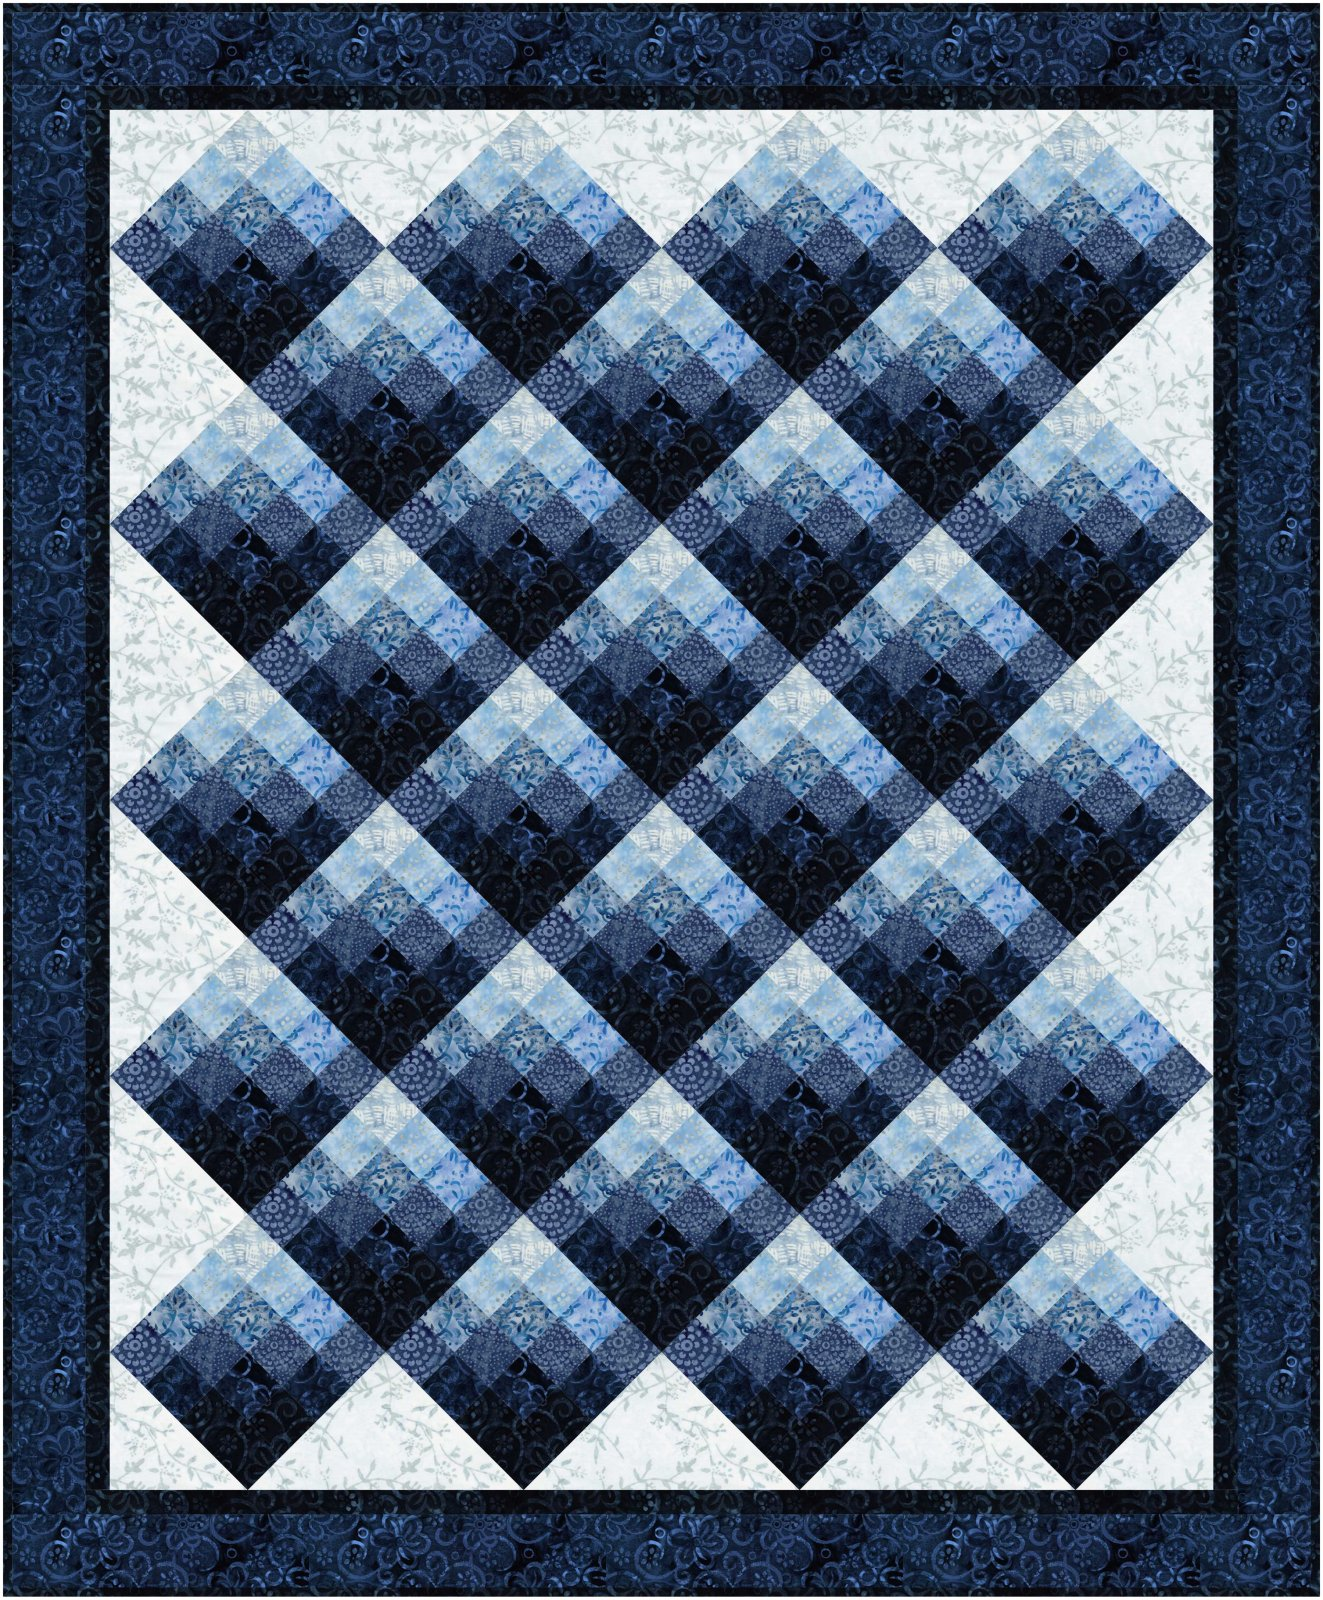 Bejeweled quilt pattern - downloadable